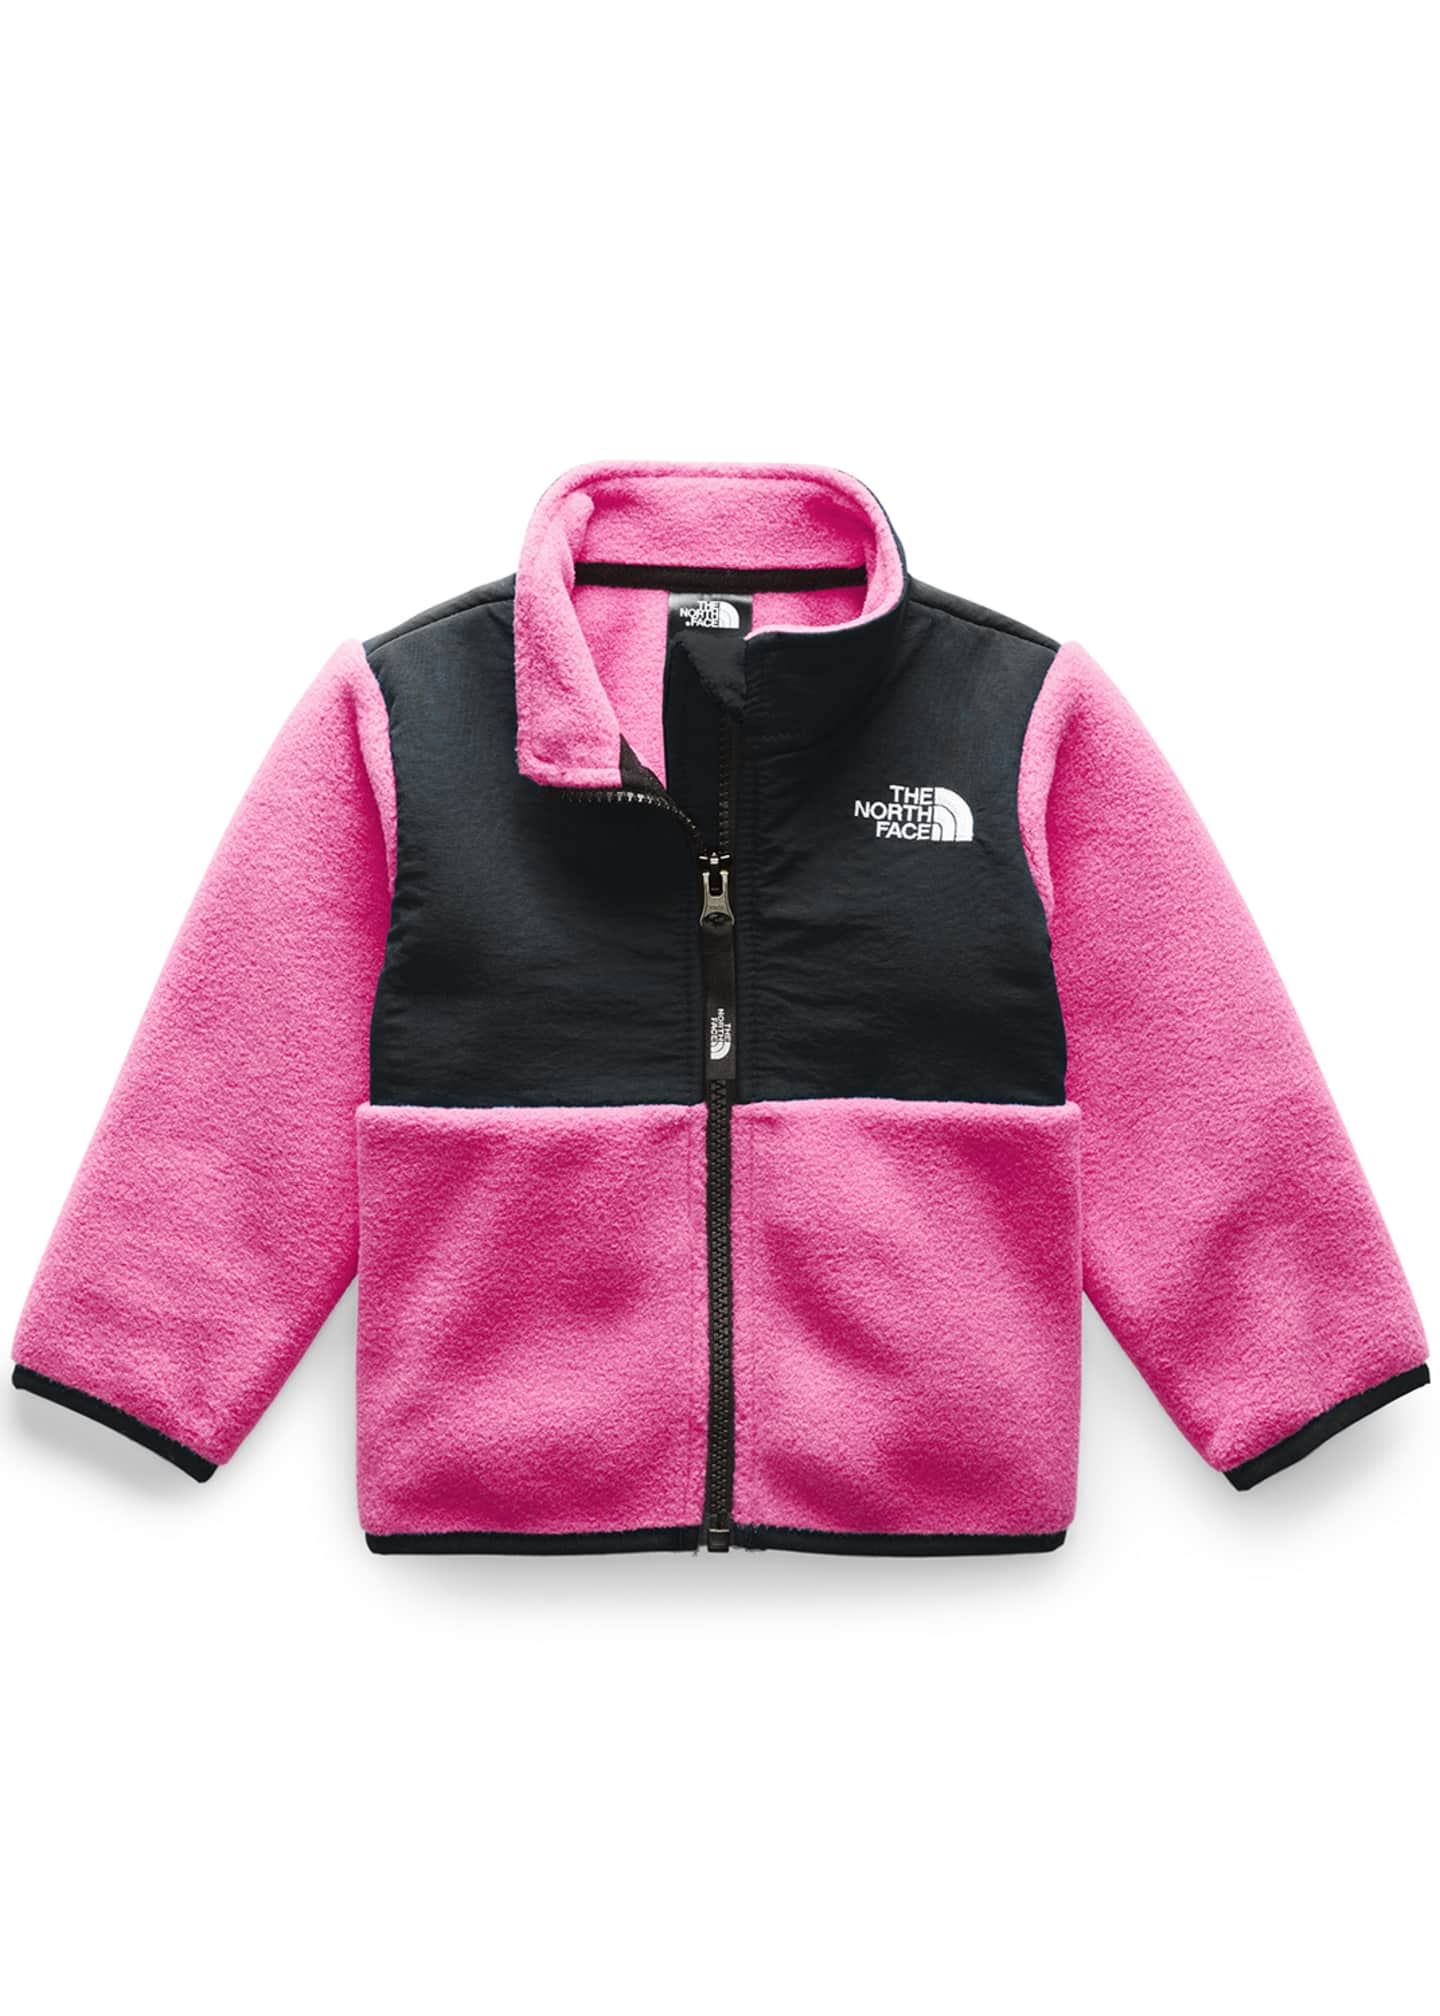 The North Face Girl's Denali Two-Tone Fleece Jacket,